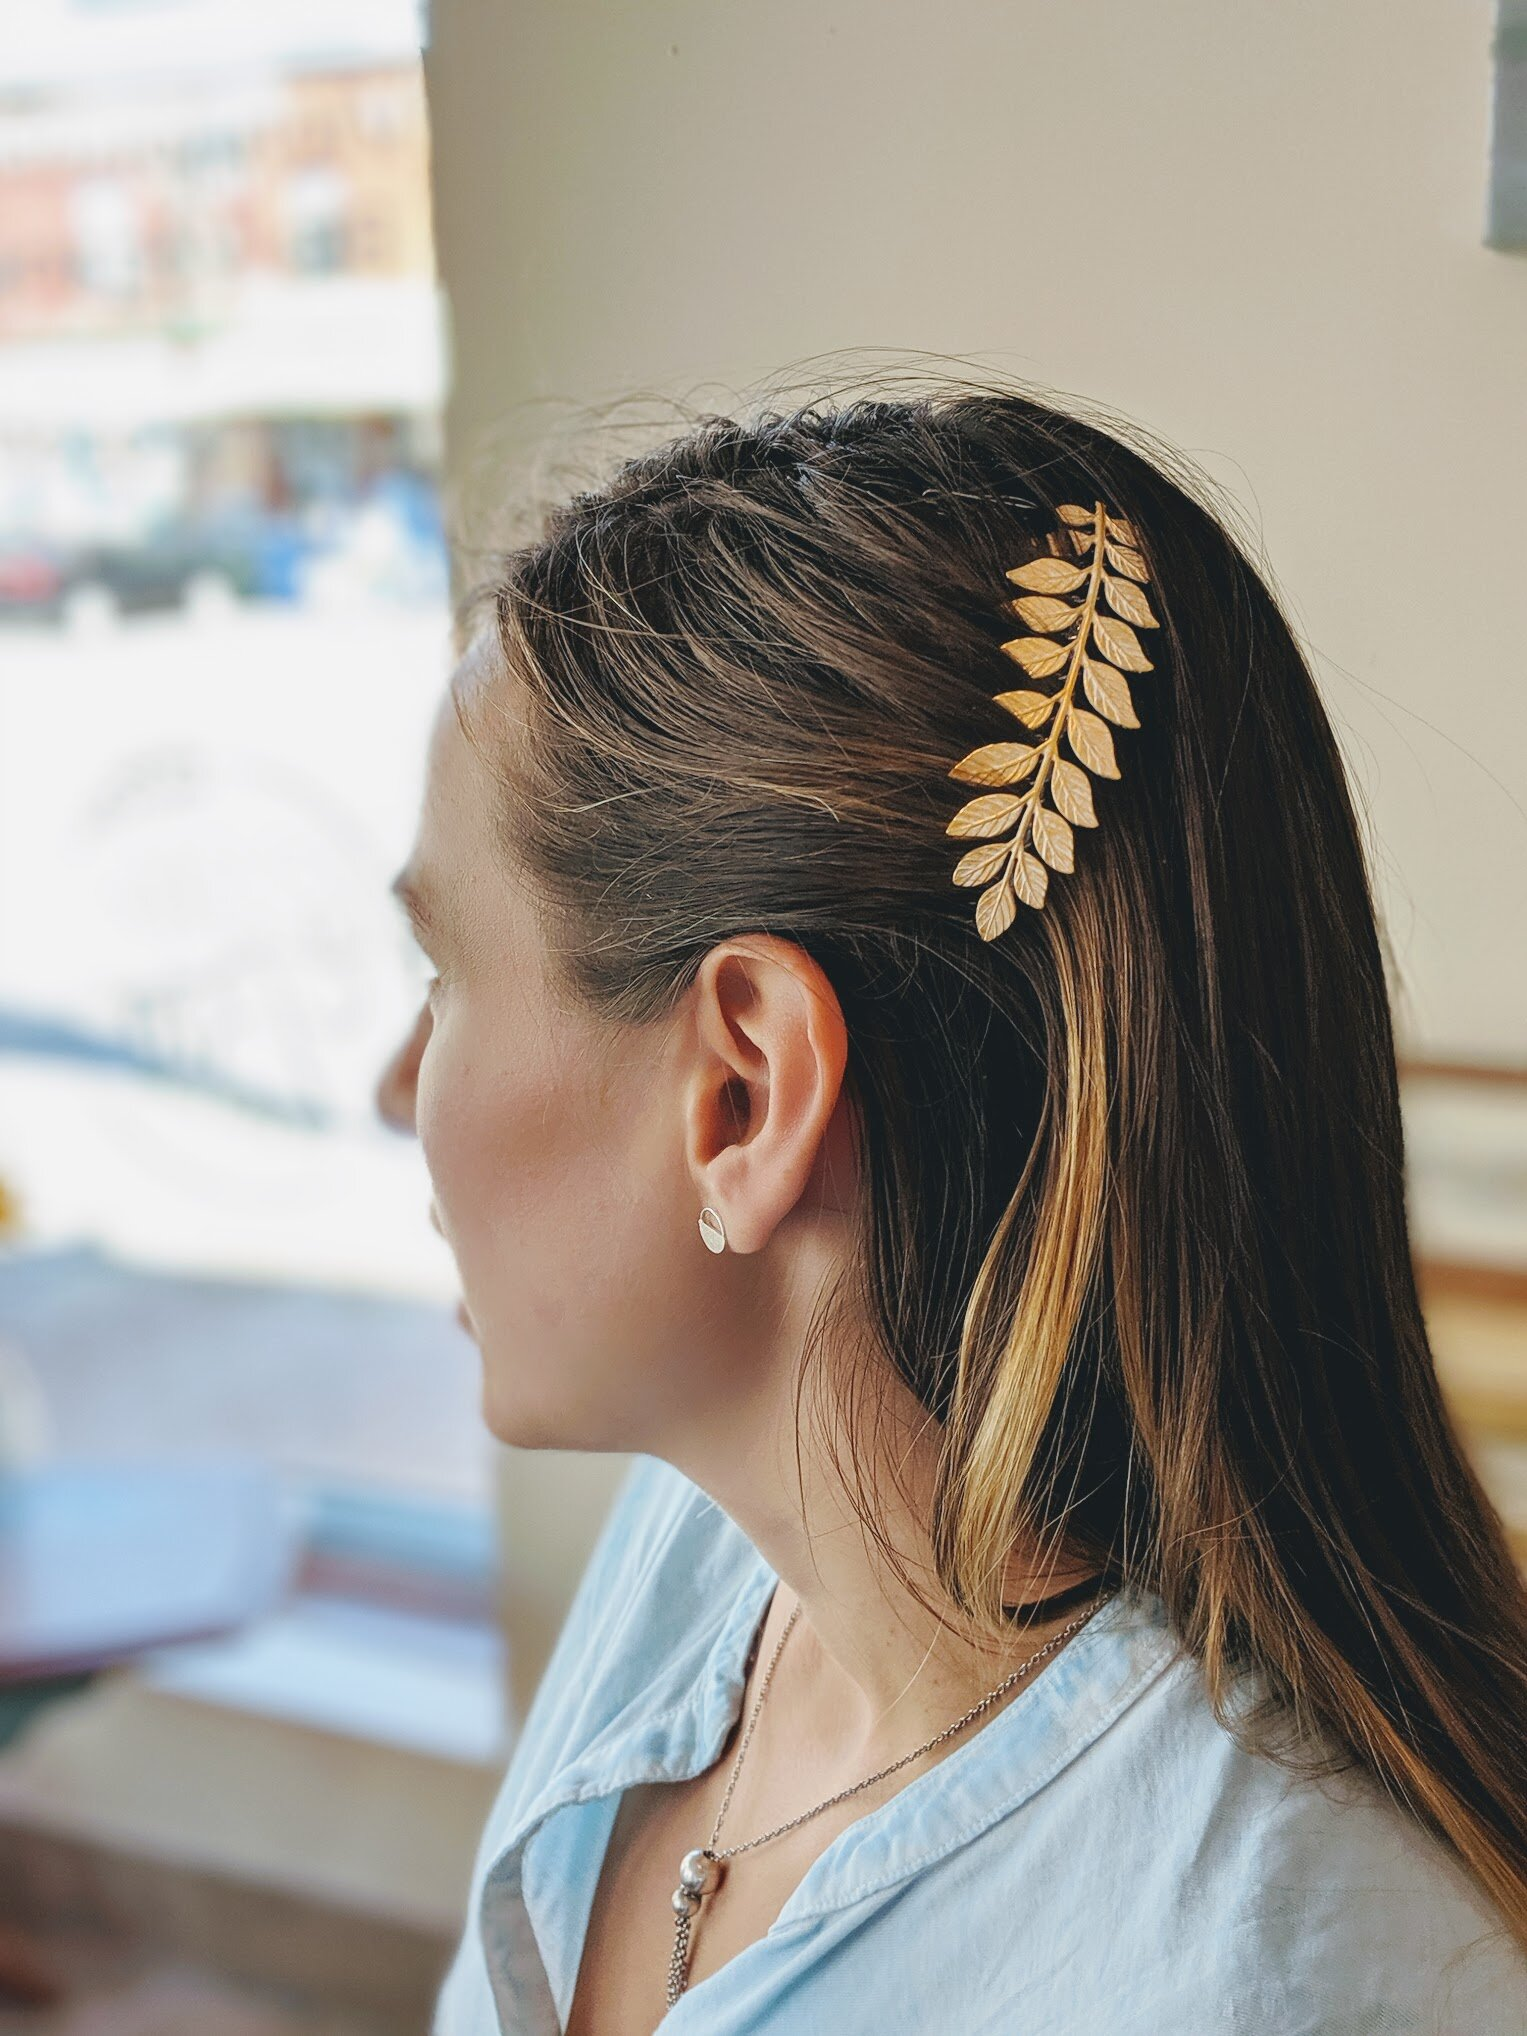 Had lunch with my sister yesterday (so happy we live in the same city again!) and she was wearing the most beautiful hair comb.